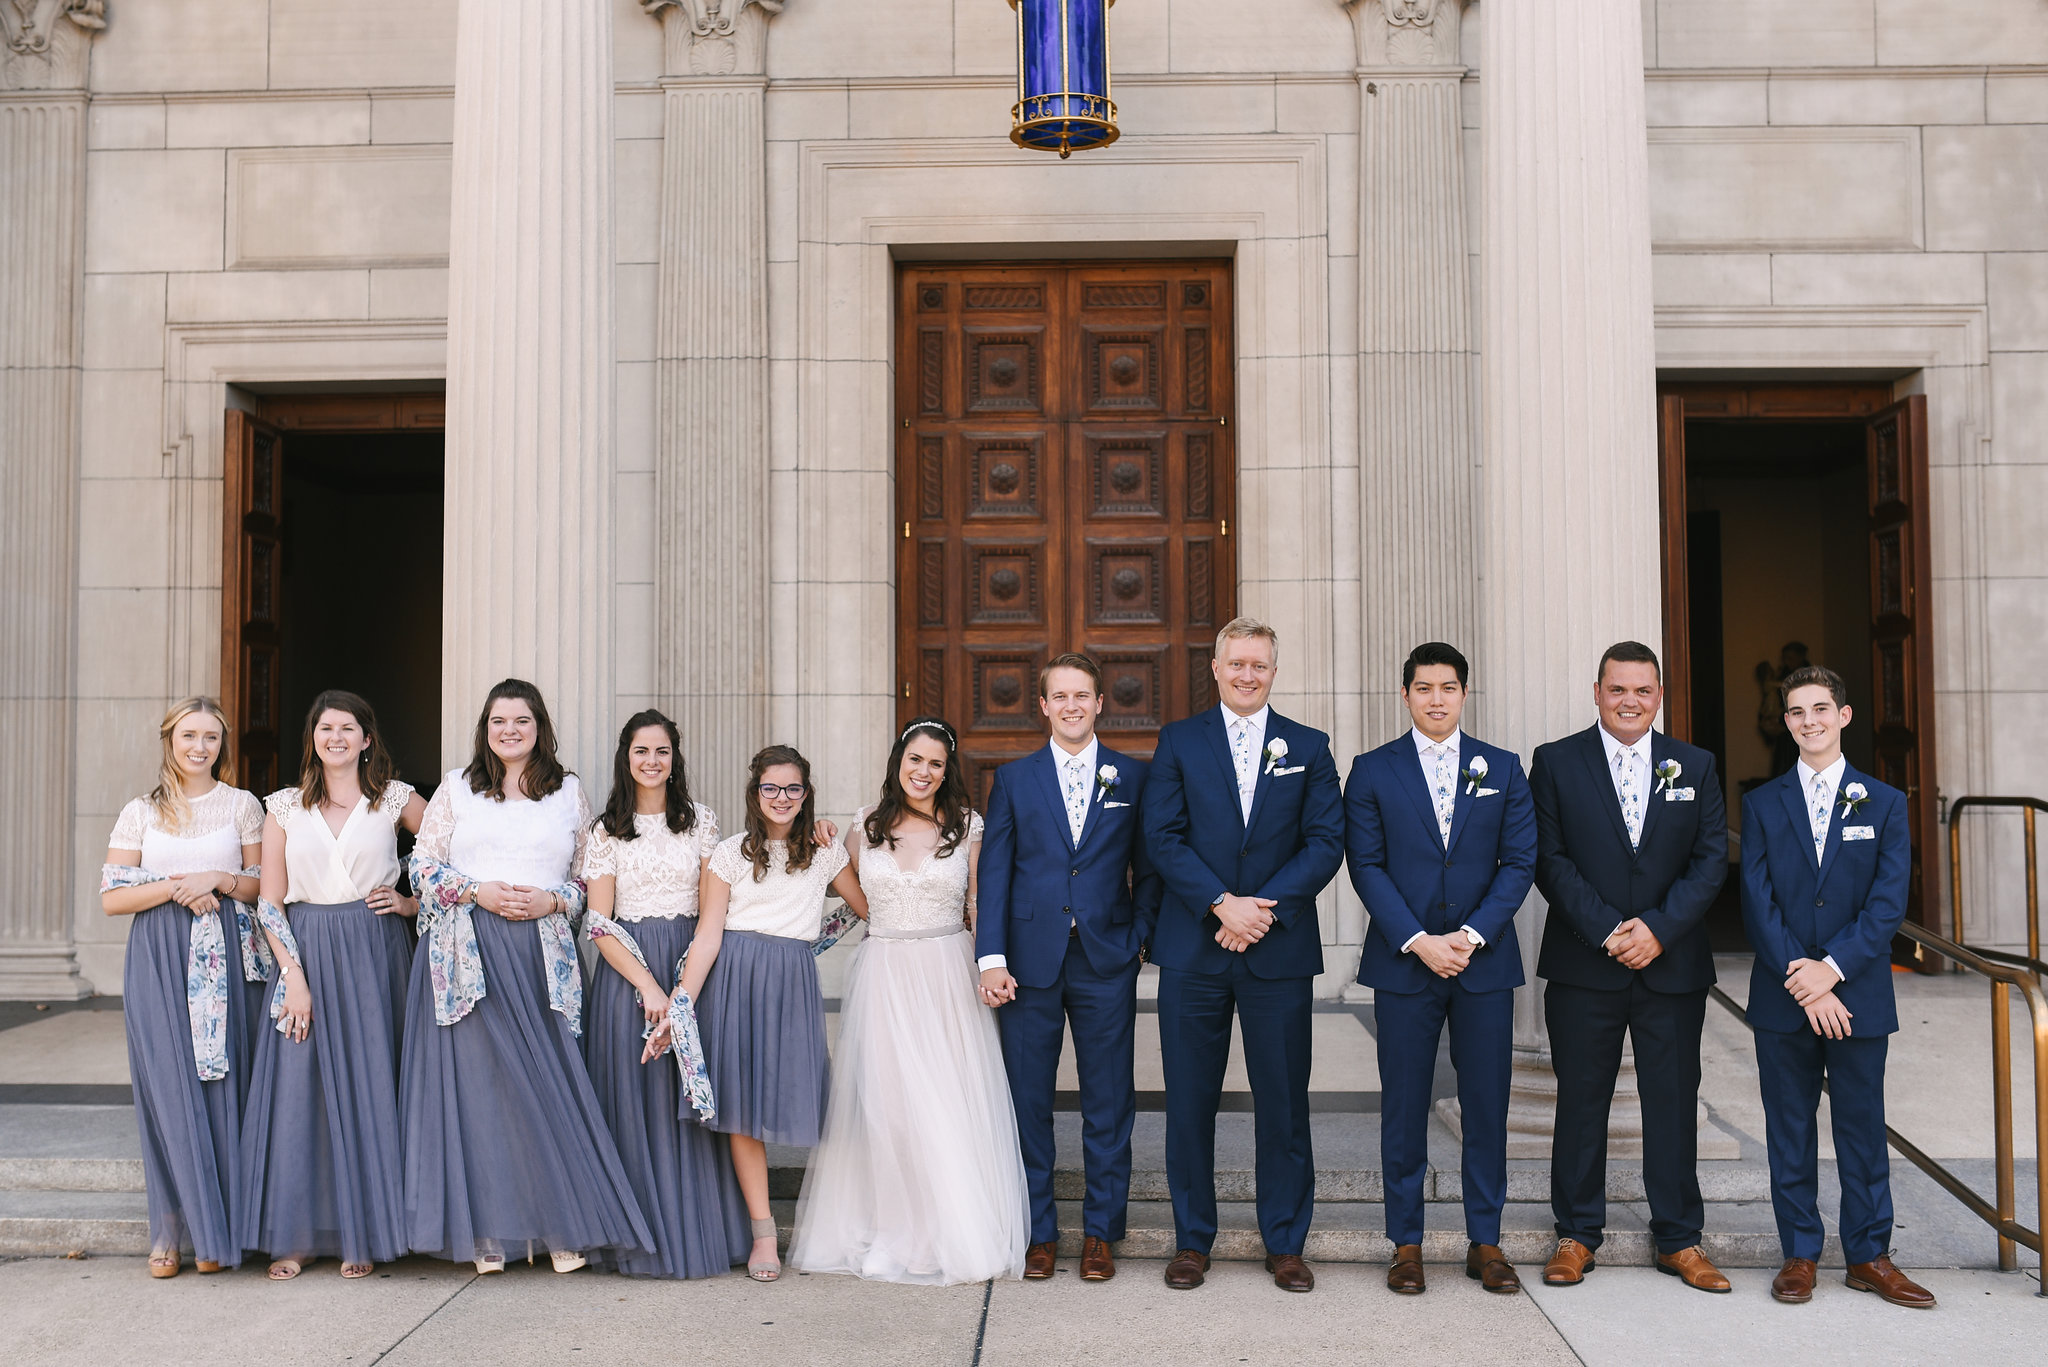 Baltimore, Canton, Church Wedding, Modern, Outdoors, Maryland Wedding Photographer, Romantic, Classic, St. Casimir Church, Portrait of wedding party, Blue groomsmen suits, white and gray bridesmaid dresses